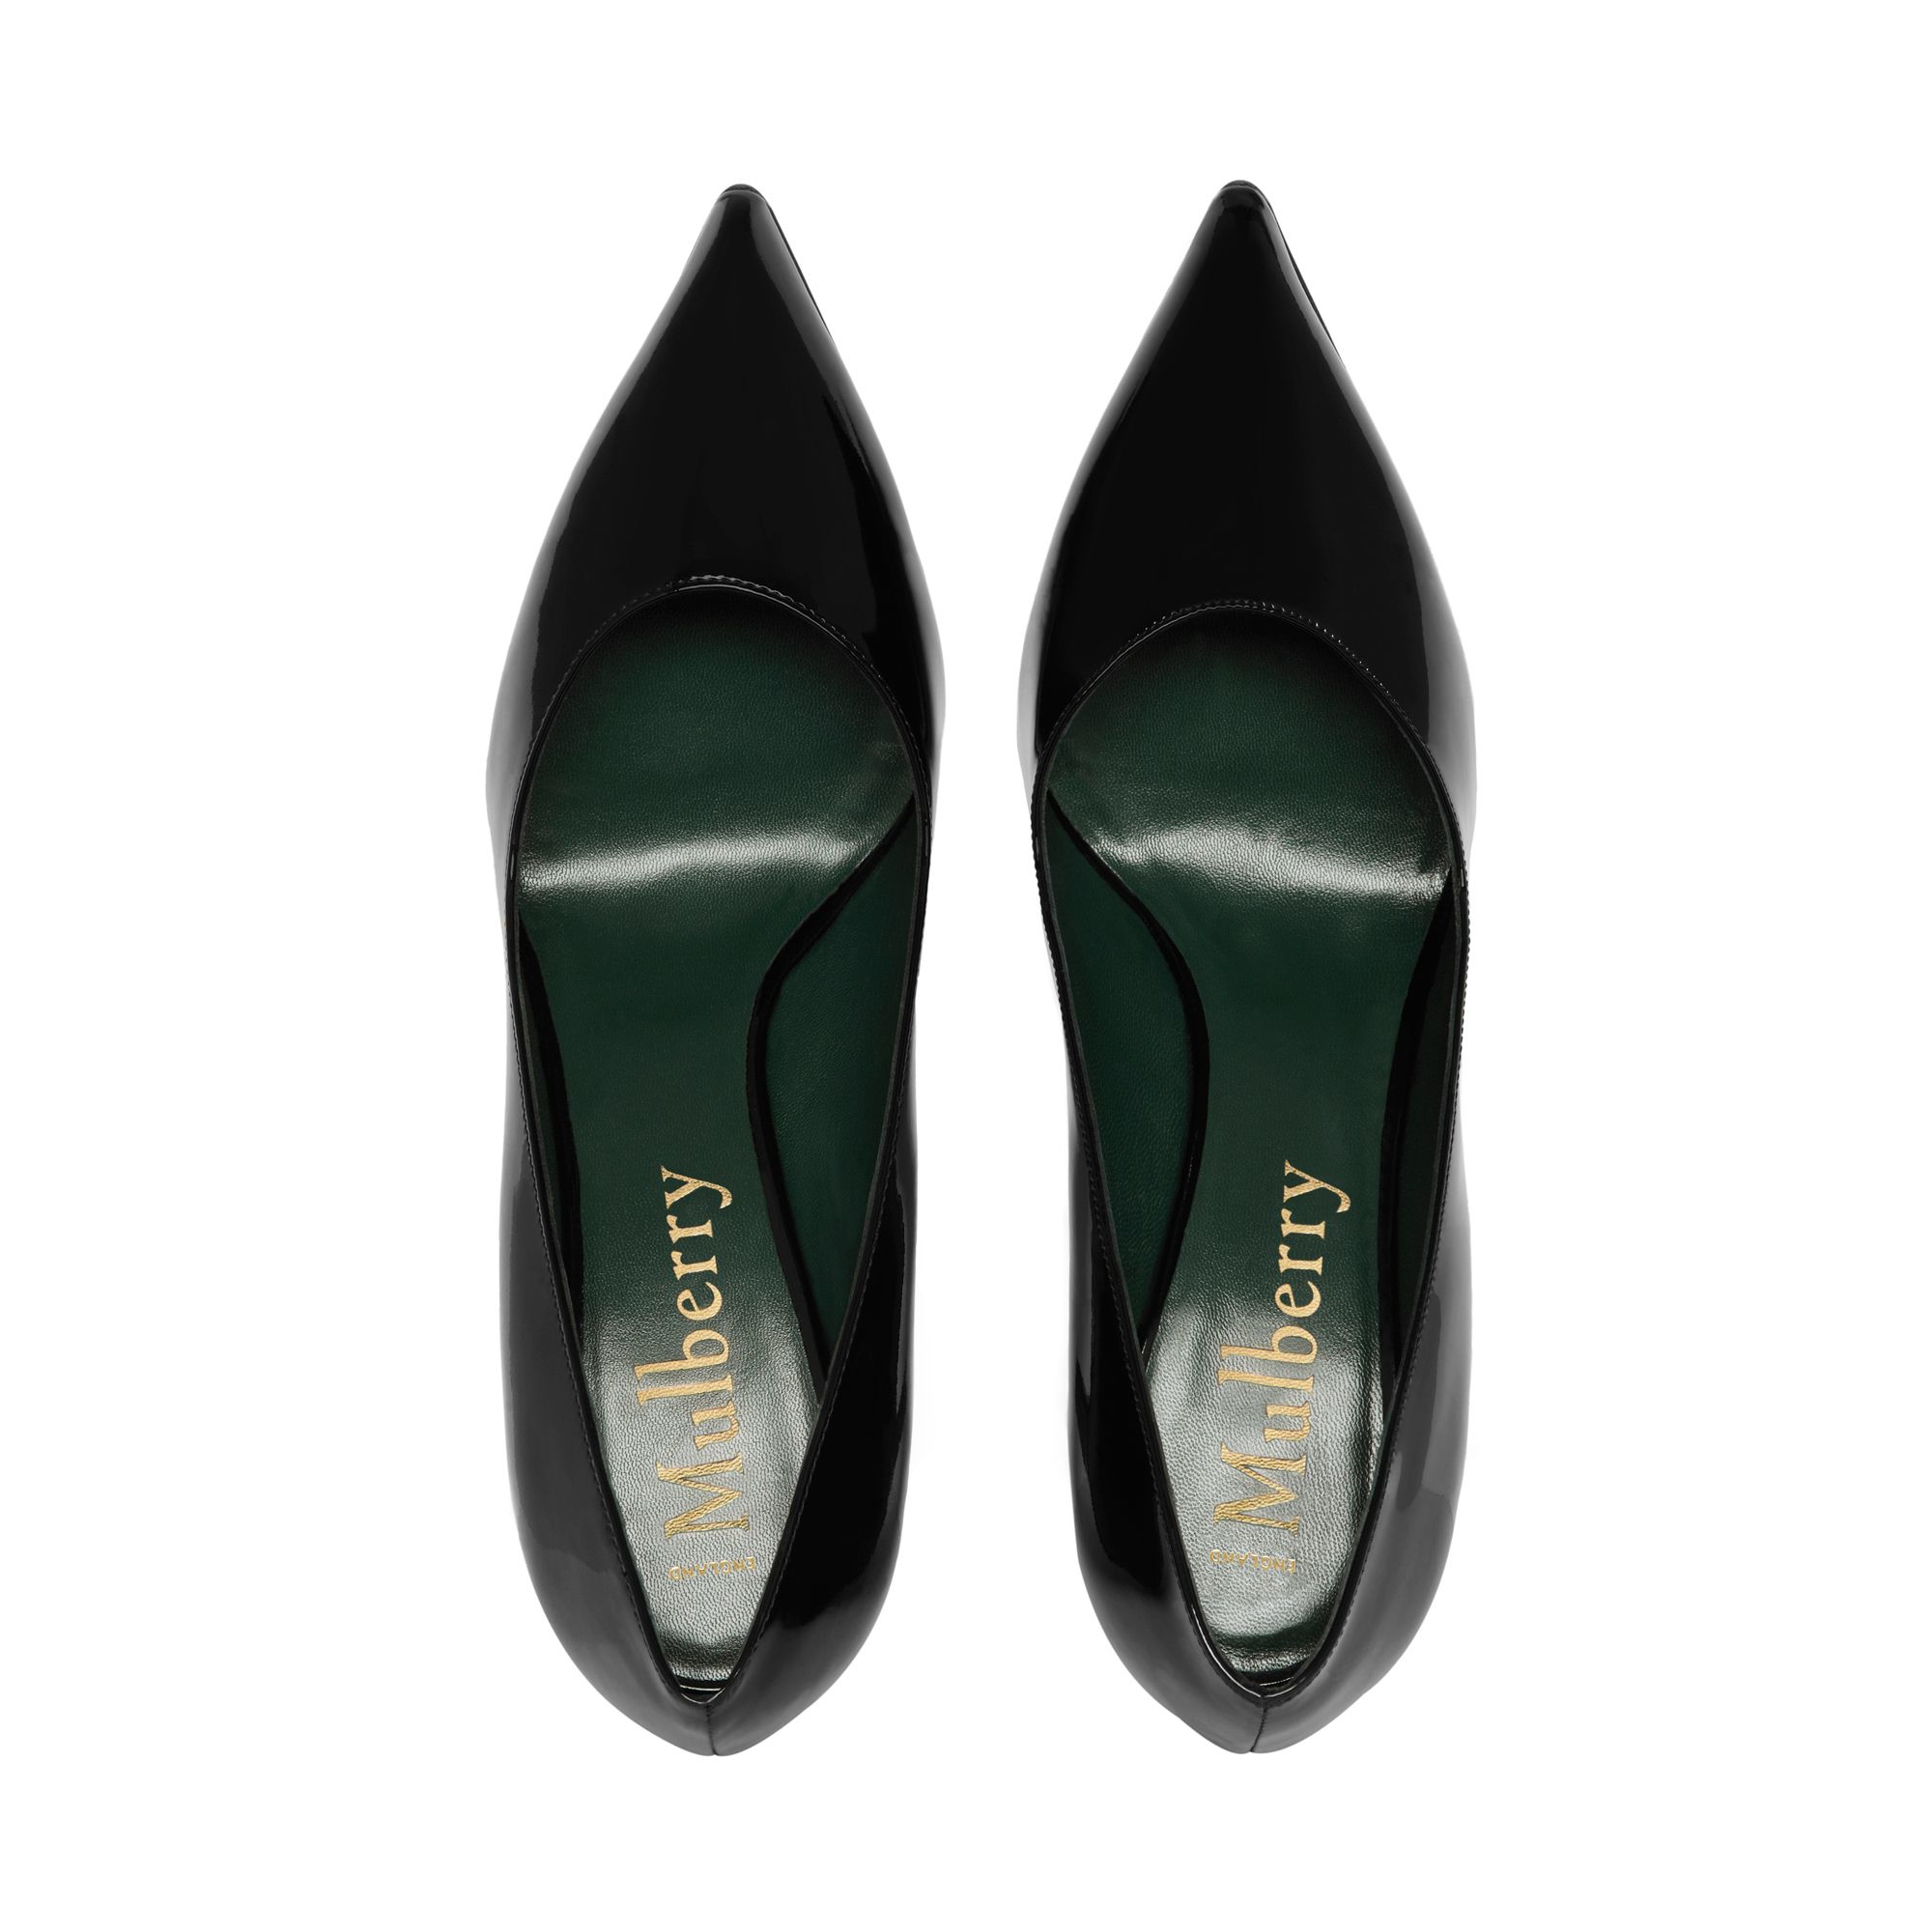 How To Soften Patent Leather Shoes